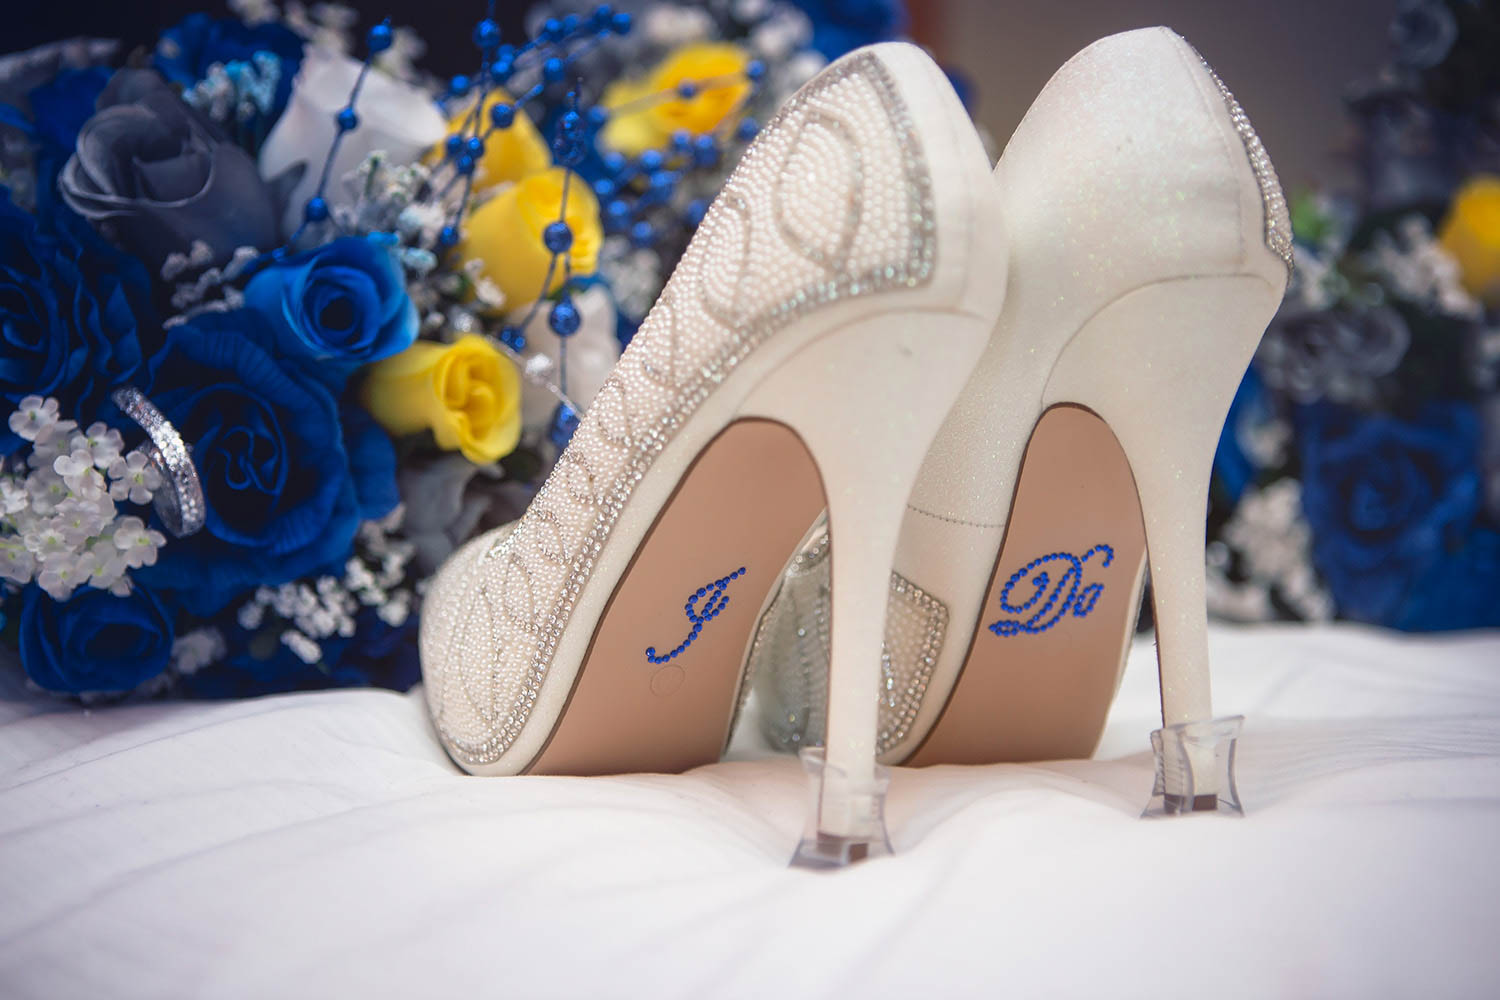 Wedding shoes say it all!